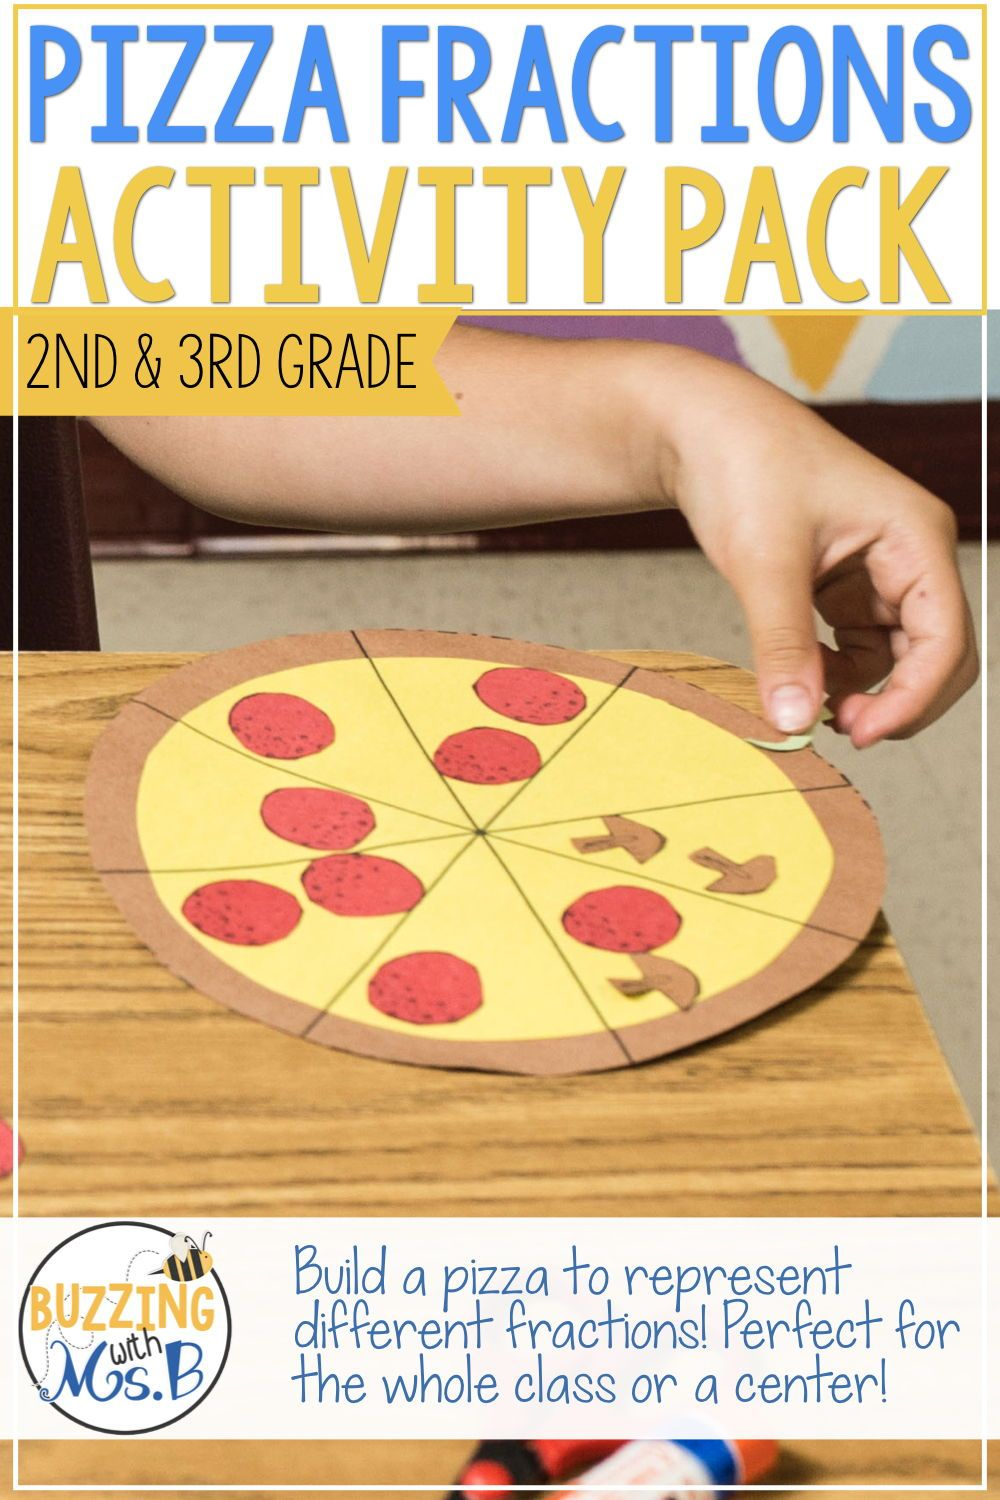 Pizza Fractions Craftivity And Activities Fractions Craftivity Pizza Fractions Fraction Activities [ 1500 x 1000 Pixel ]